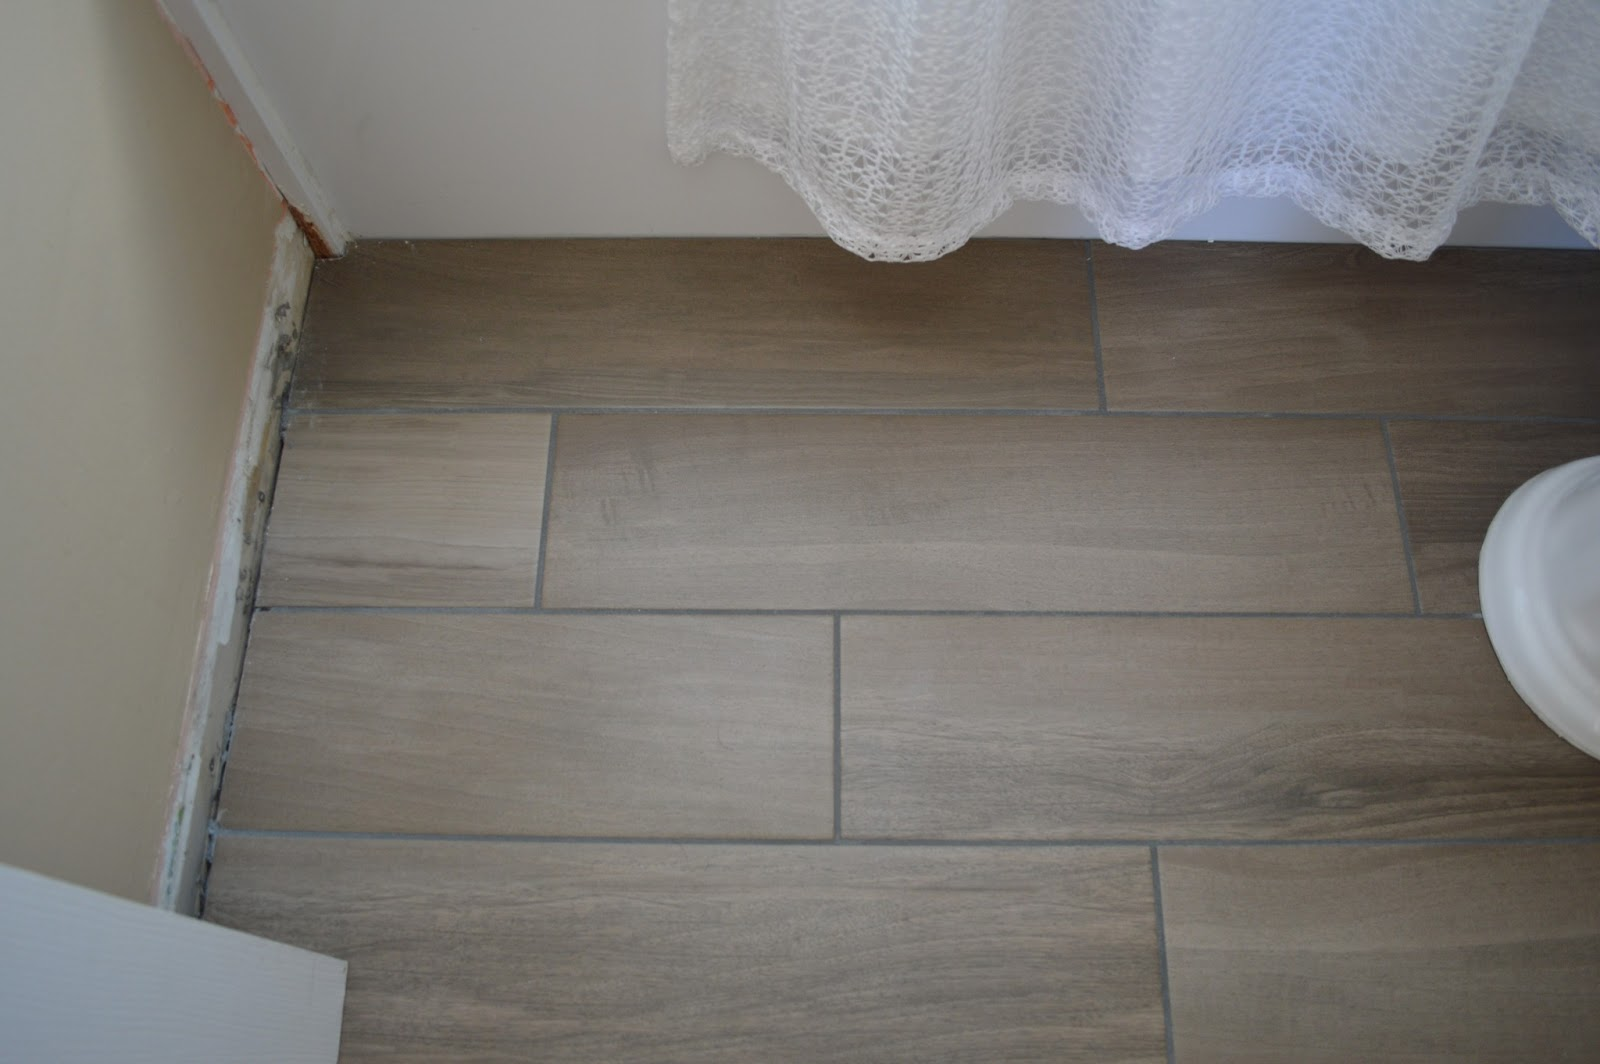 Completely new This Kind Handyman and I : When Your Tile Grout Turns White, This  WW91